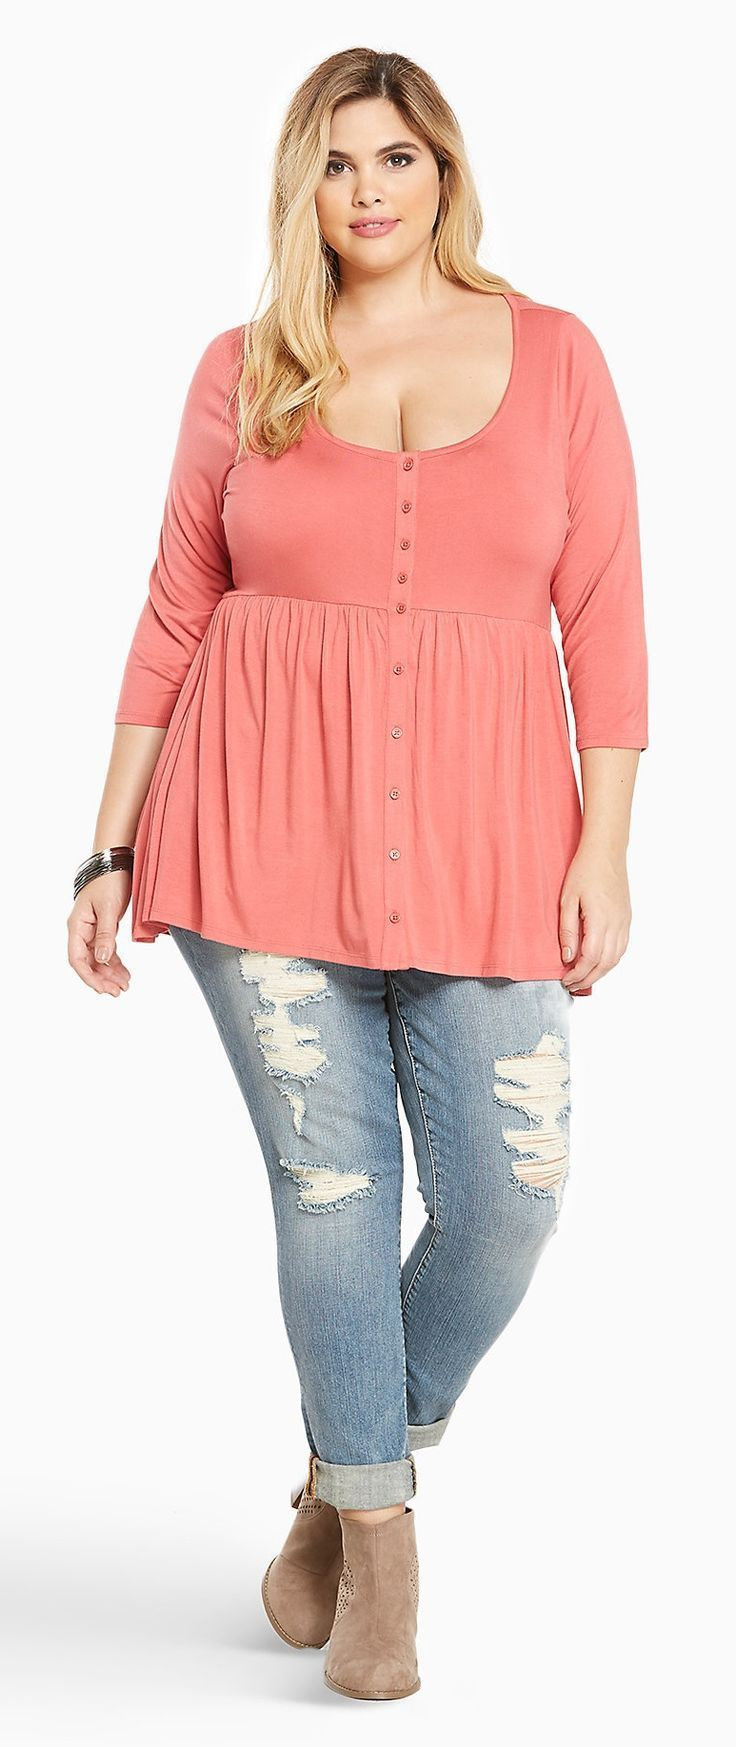 Plus Size Button Front Babydoll Top | LINDO | Pinterest | Tallas ...